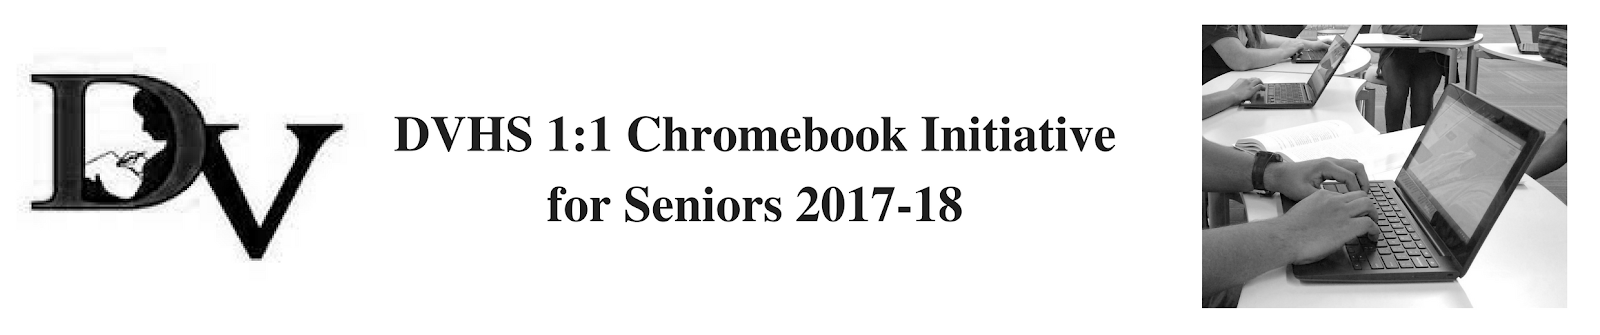 Announcing Our NewDVHS 1-1 Chromebook Inititativefor Seniors.png